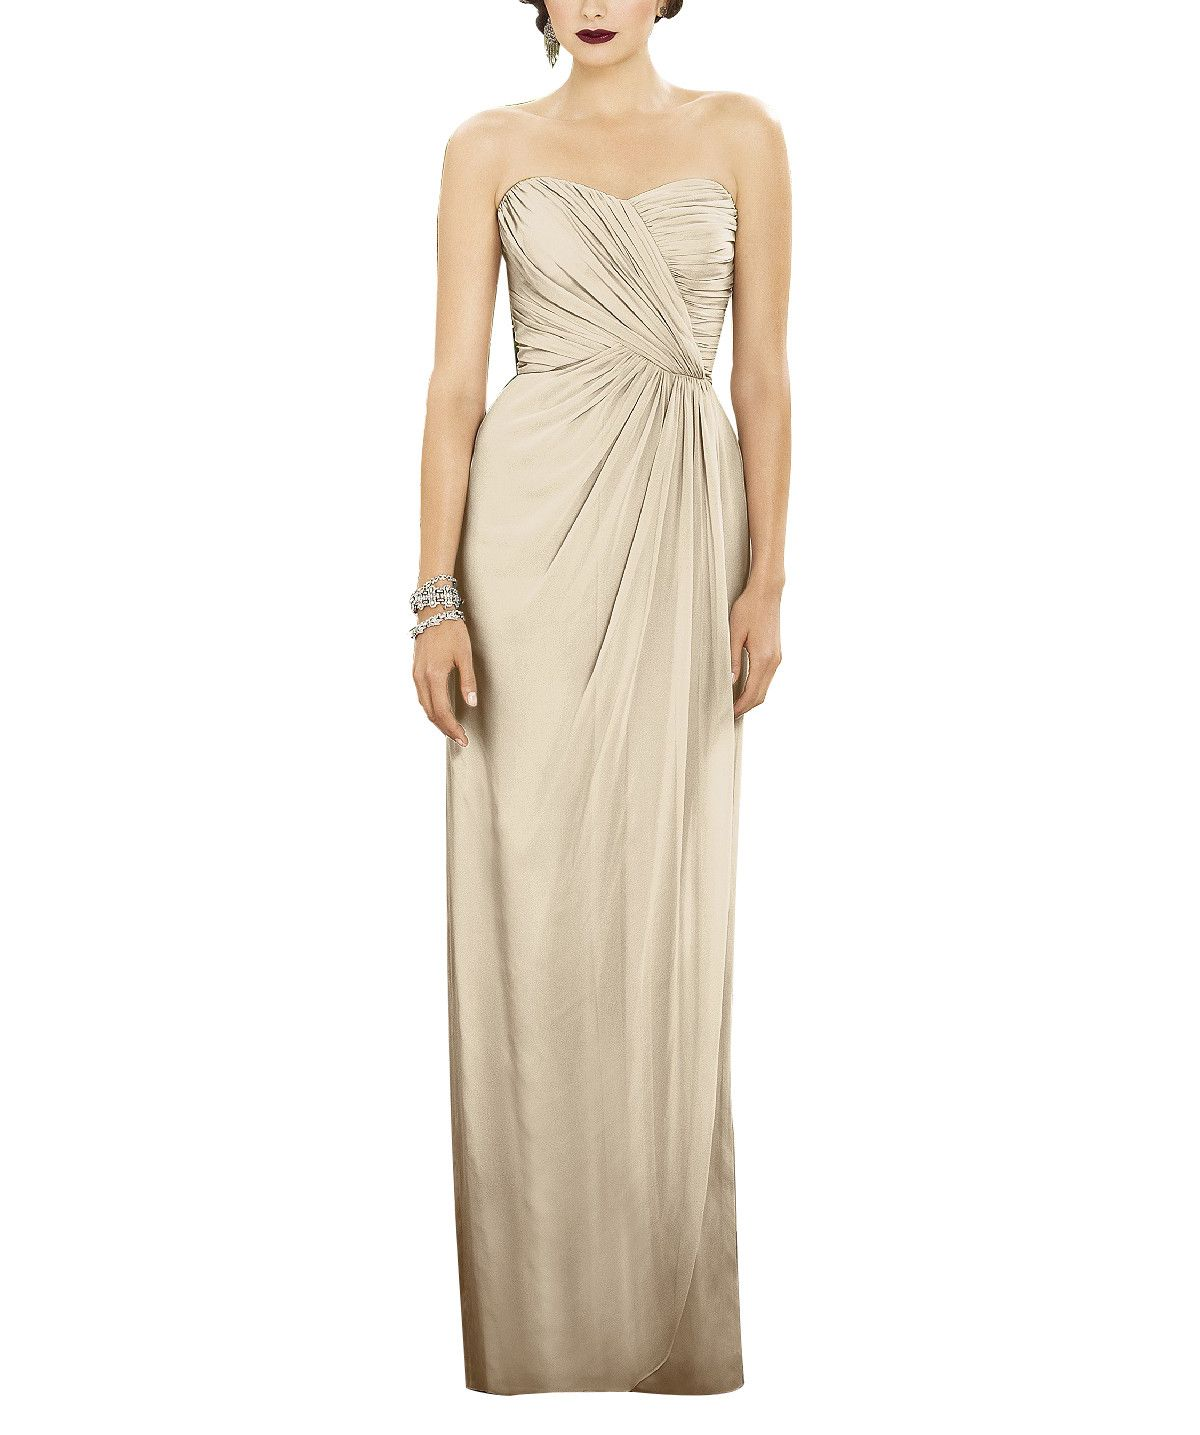 Dessy collection style 2882 bridesmaid dress styles alfred sung dessy collection style 2882 bridesmaid dress ombrellifo Choice Image